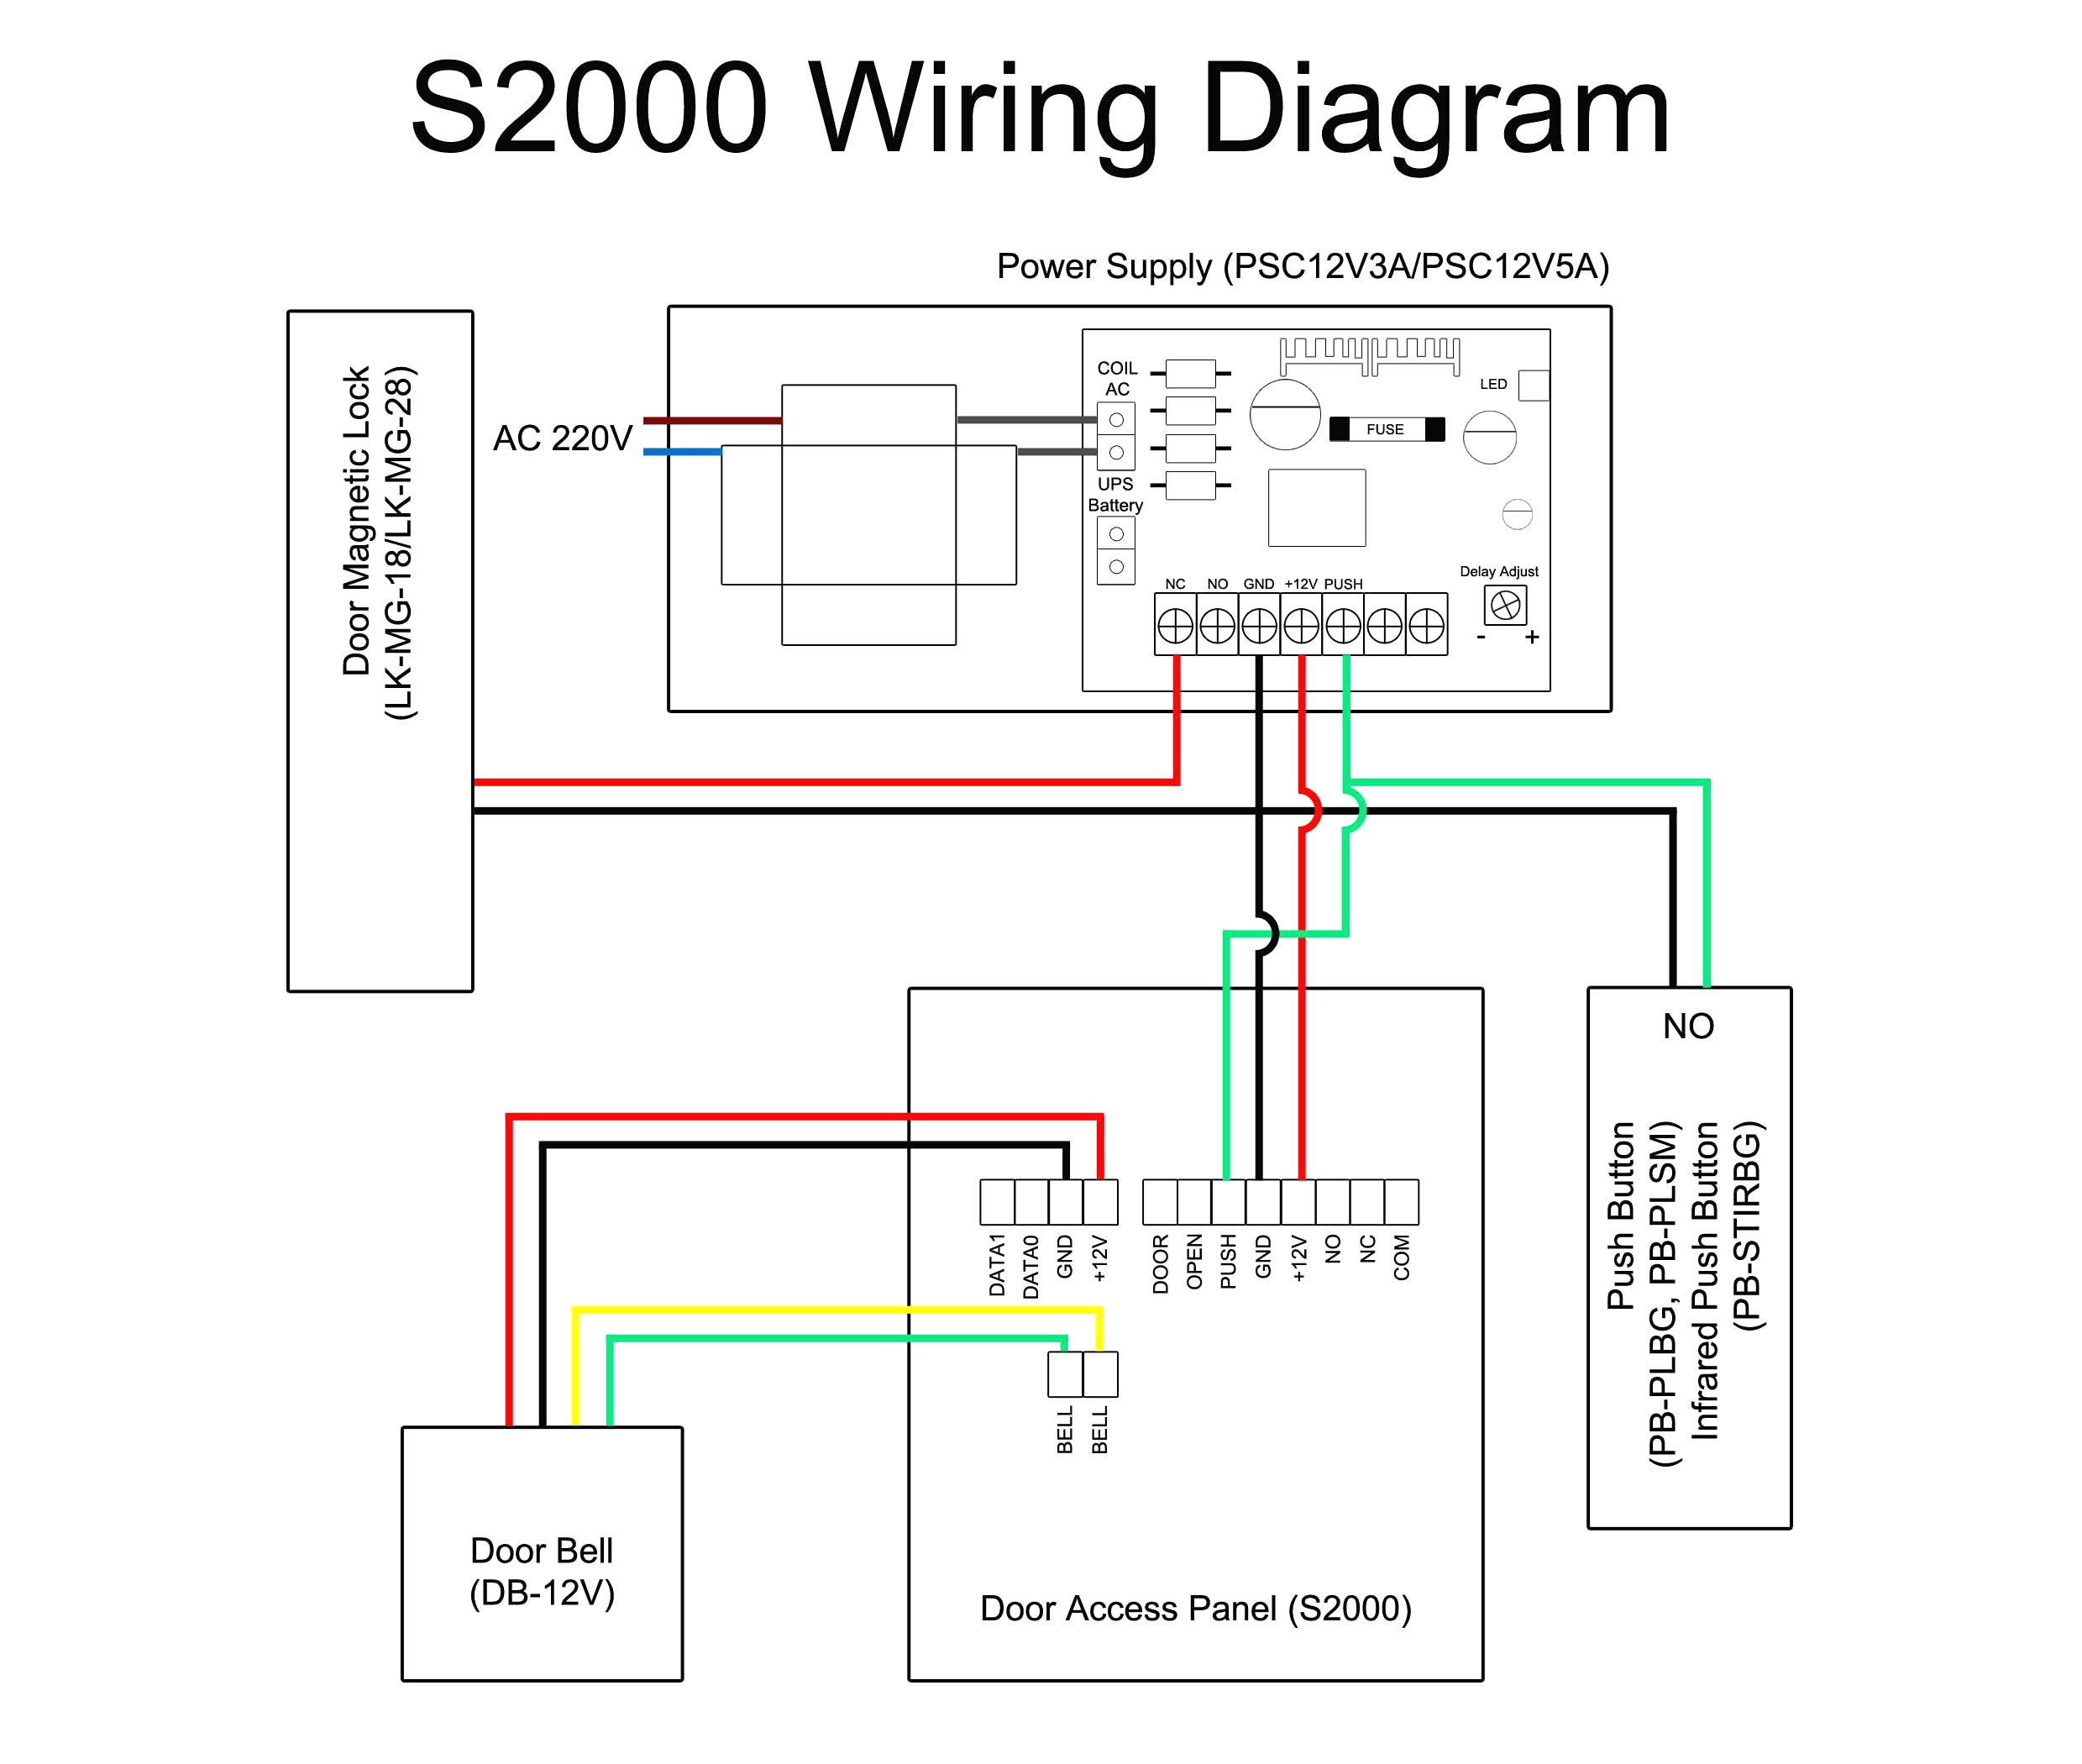 door access control system wiring diagram pdf Download-door access control wiring diagram Download Wiring Diagram Security Alarm New Samsung Security Camera Wiring 20-l